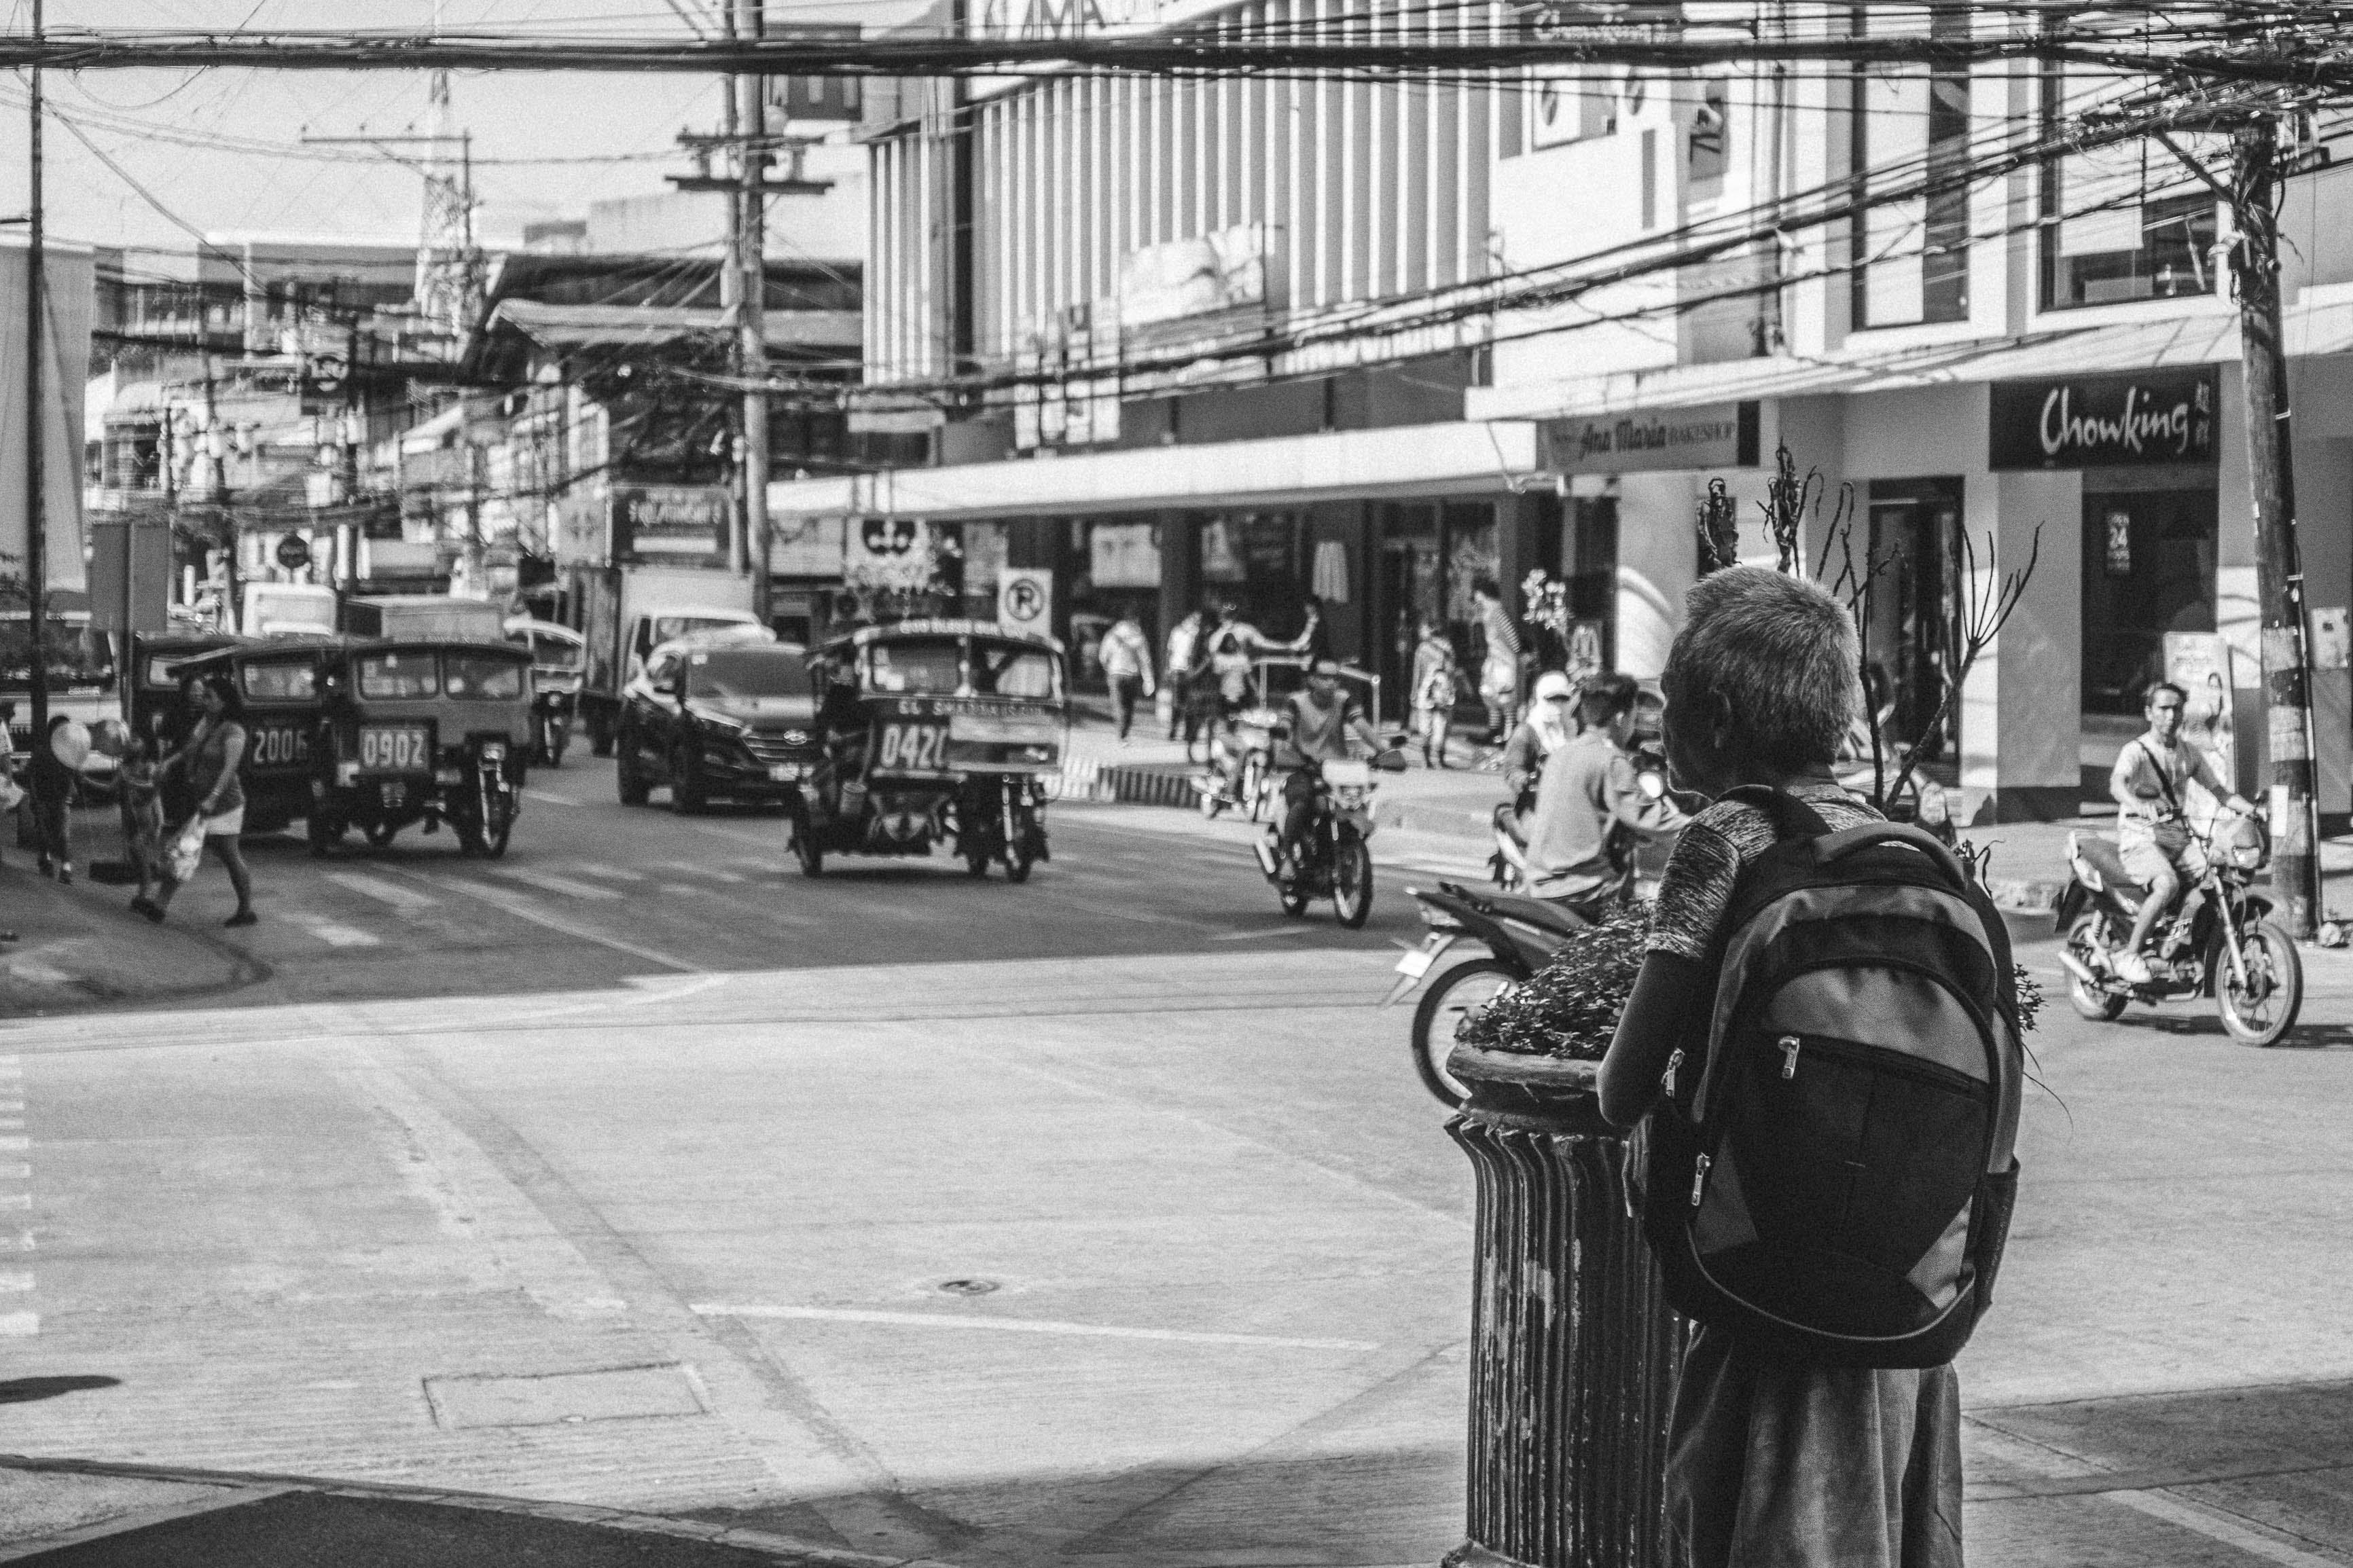 Person Wearing a Backpack in the Middle of the Street in Grayscale Photo